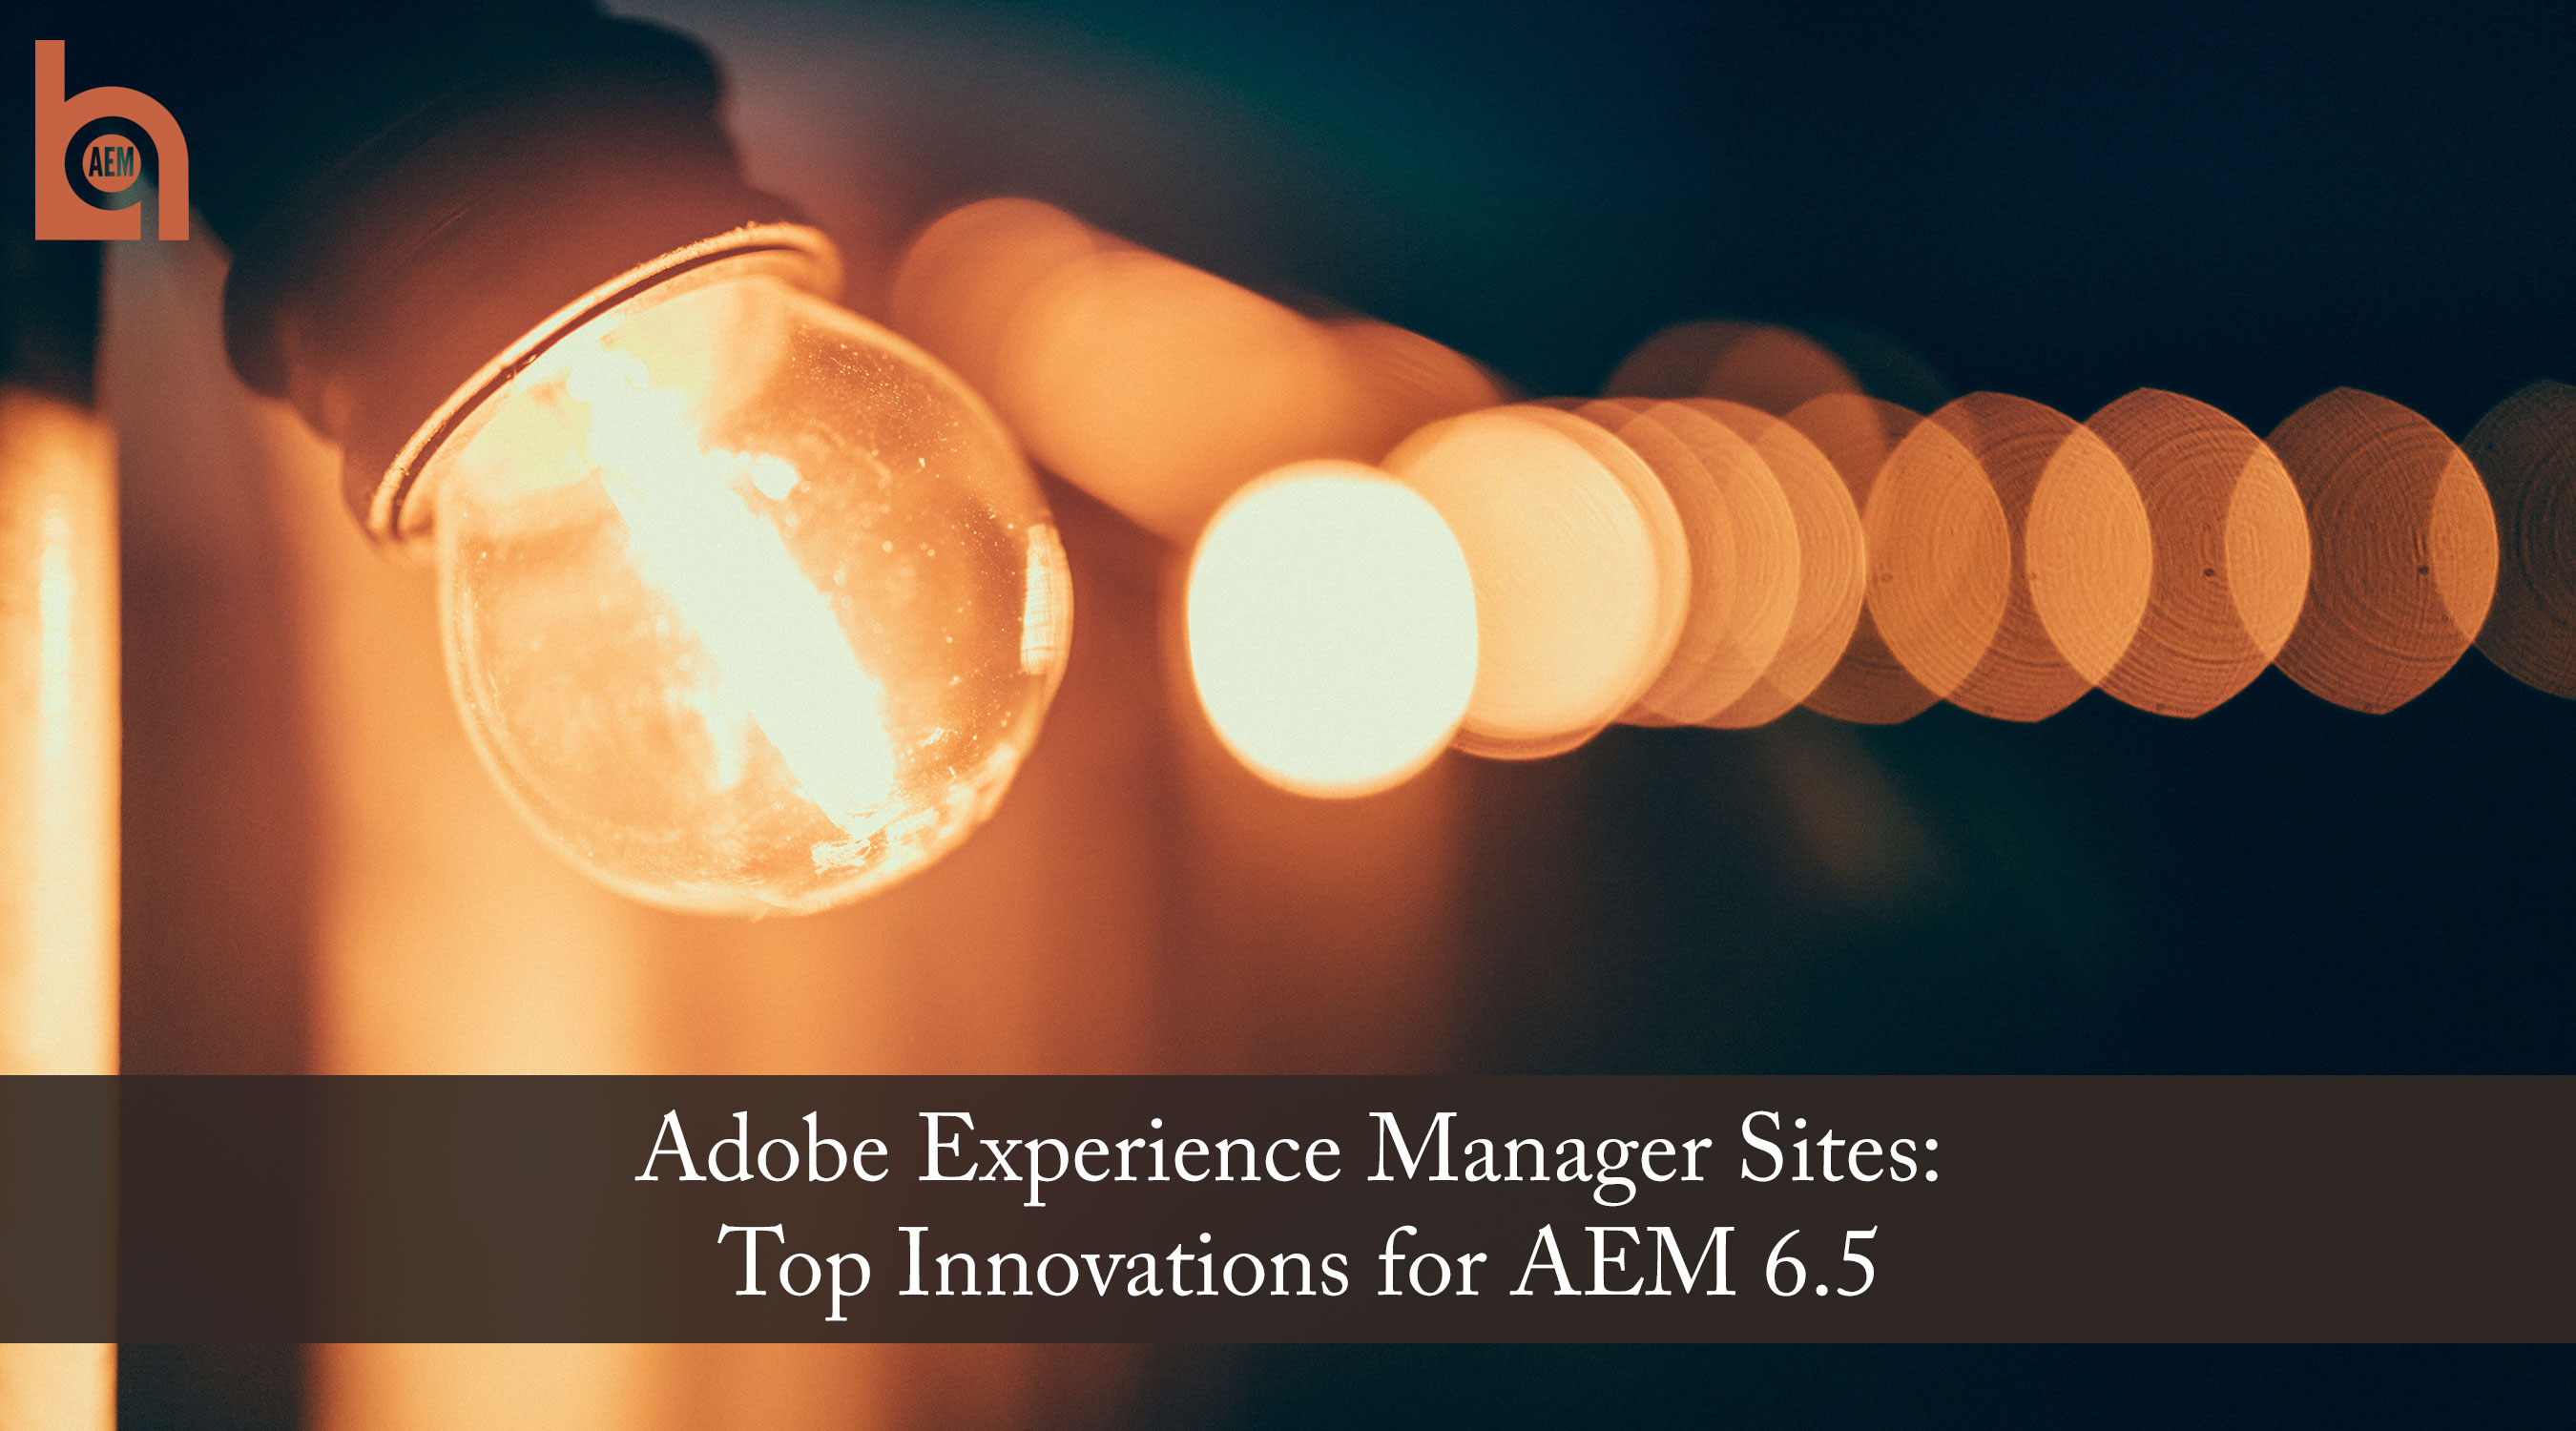 Adobe Experience Manager Sites: Top Innovations for AEM 6.5